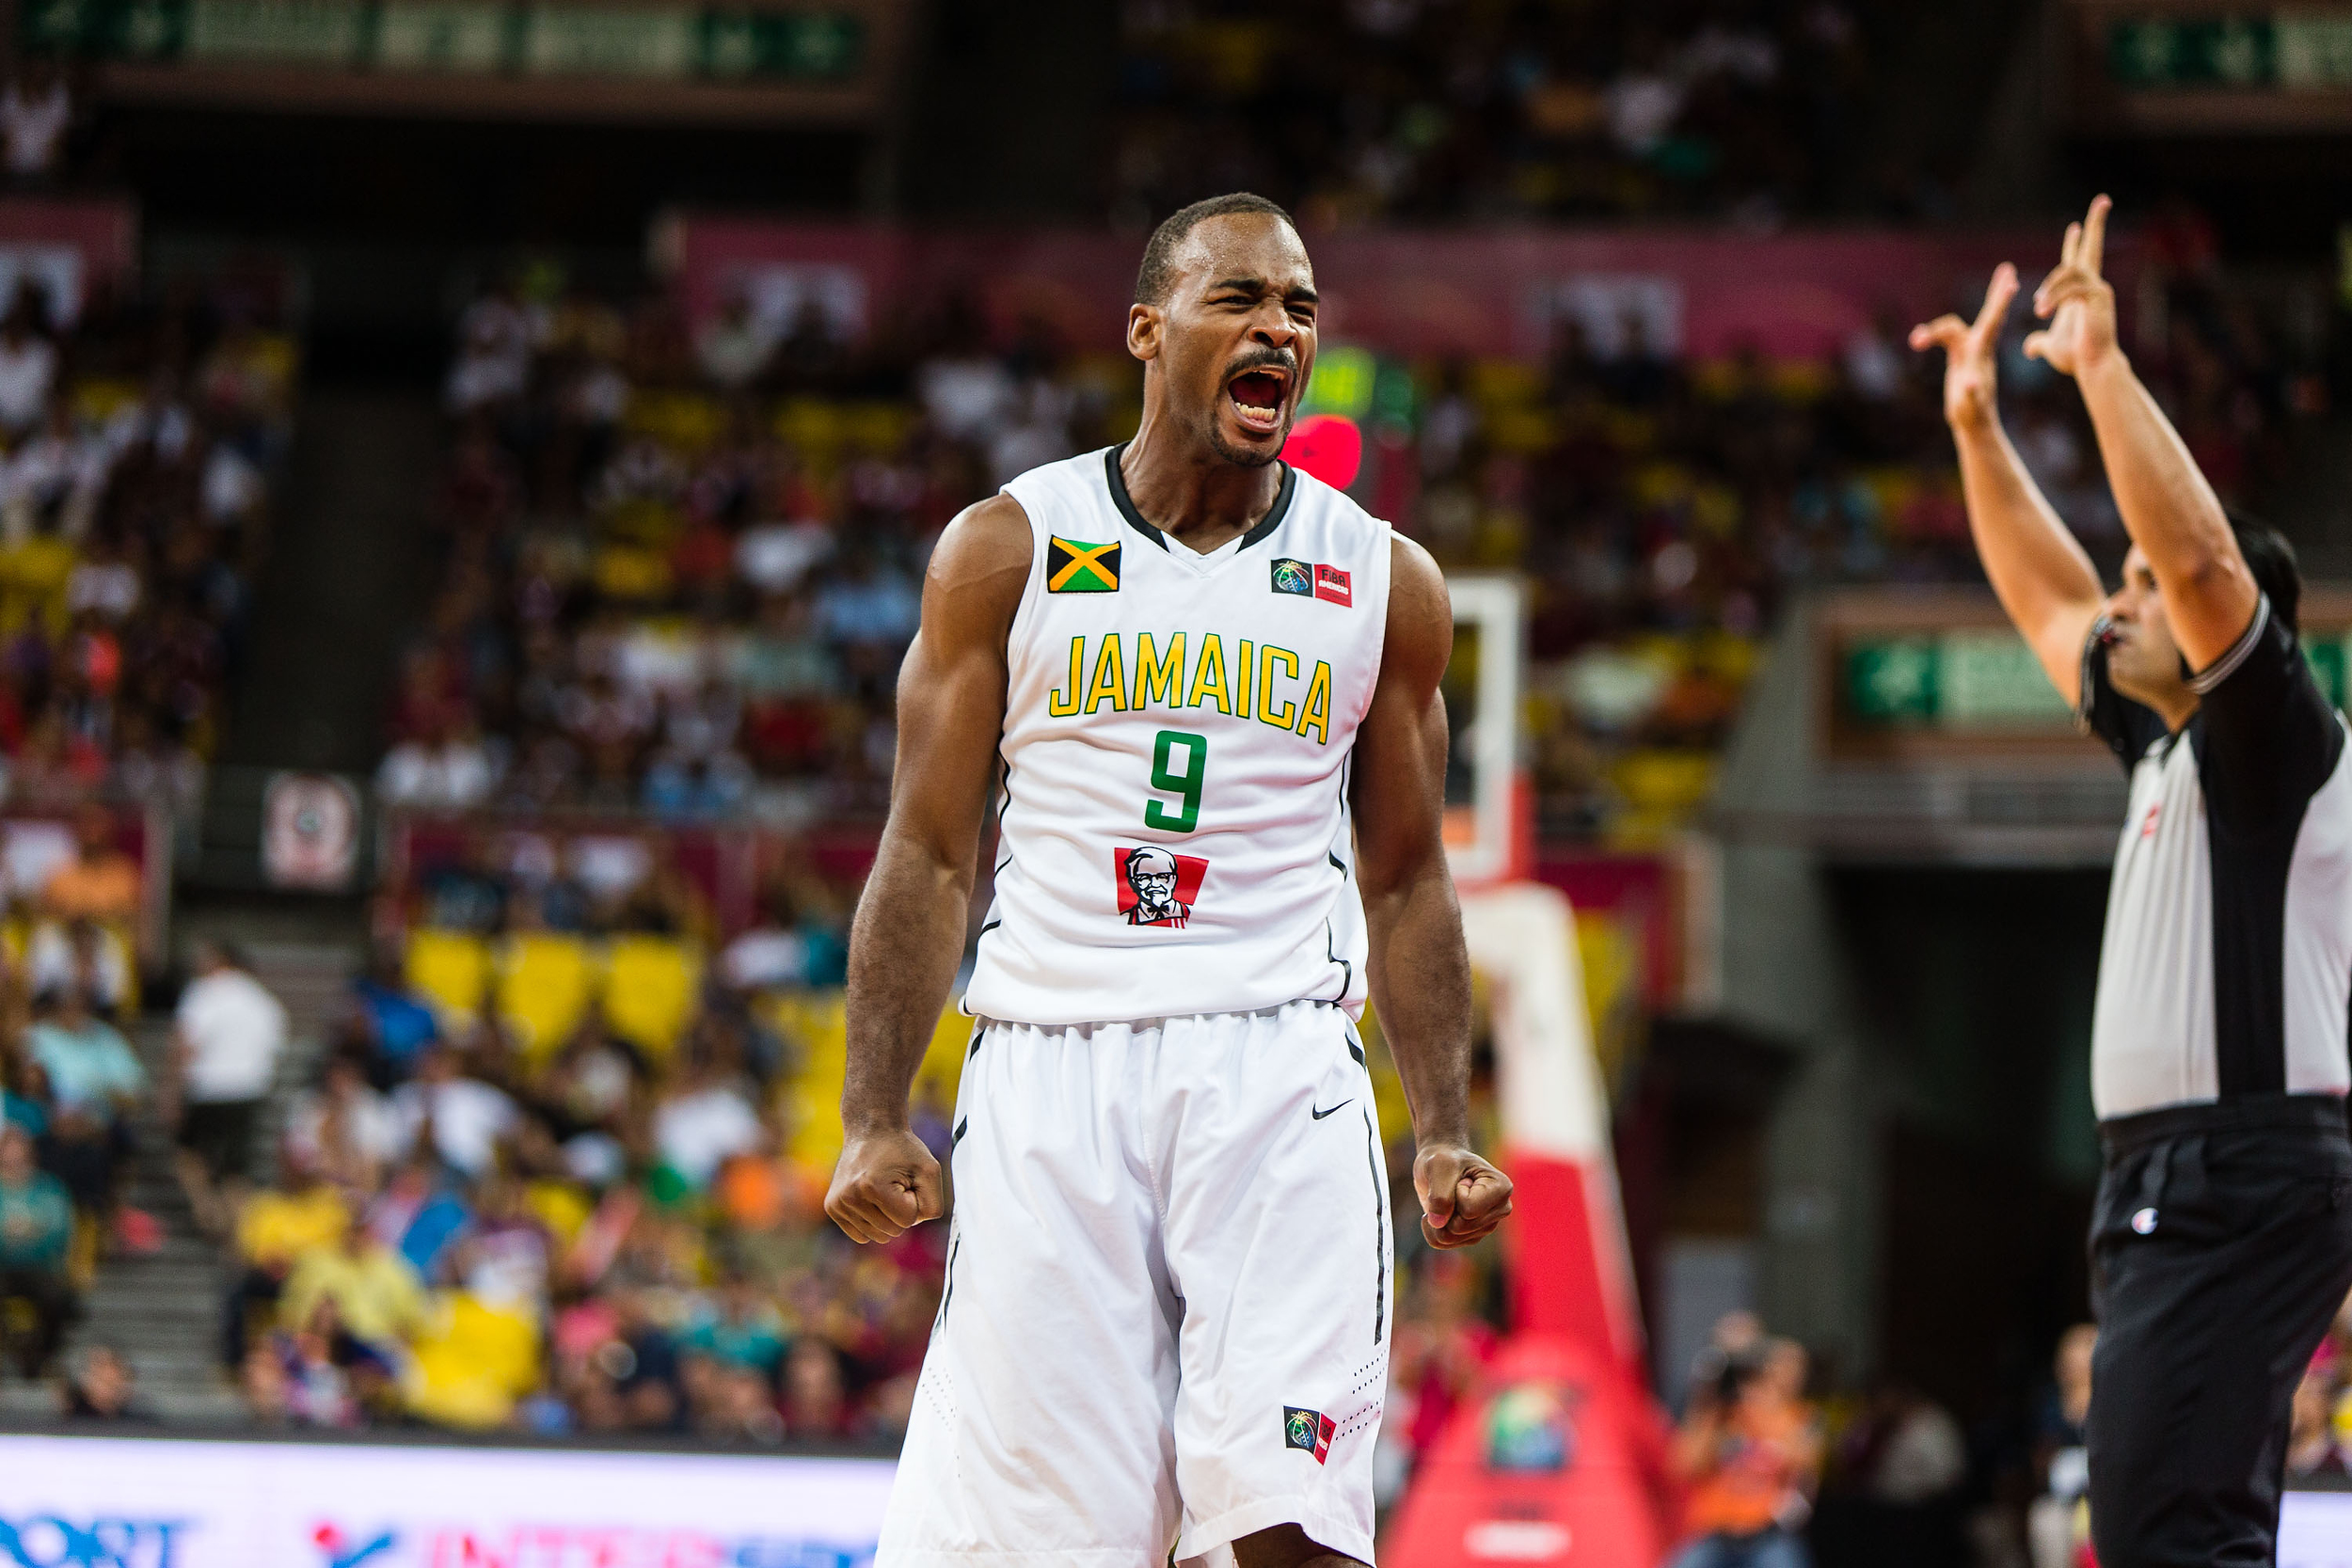 Jamaica's Akeem Scott was the emotional leader of his team in its first appearance in international basketball competition.